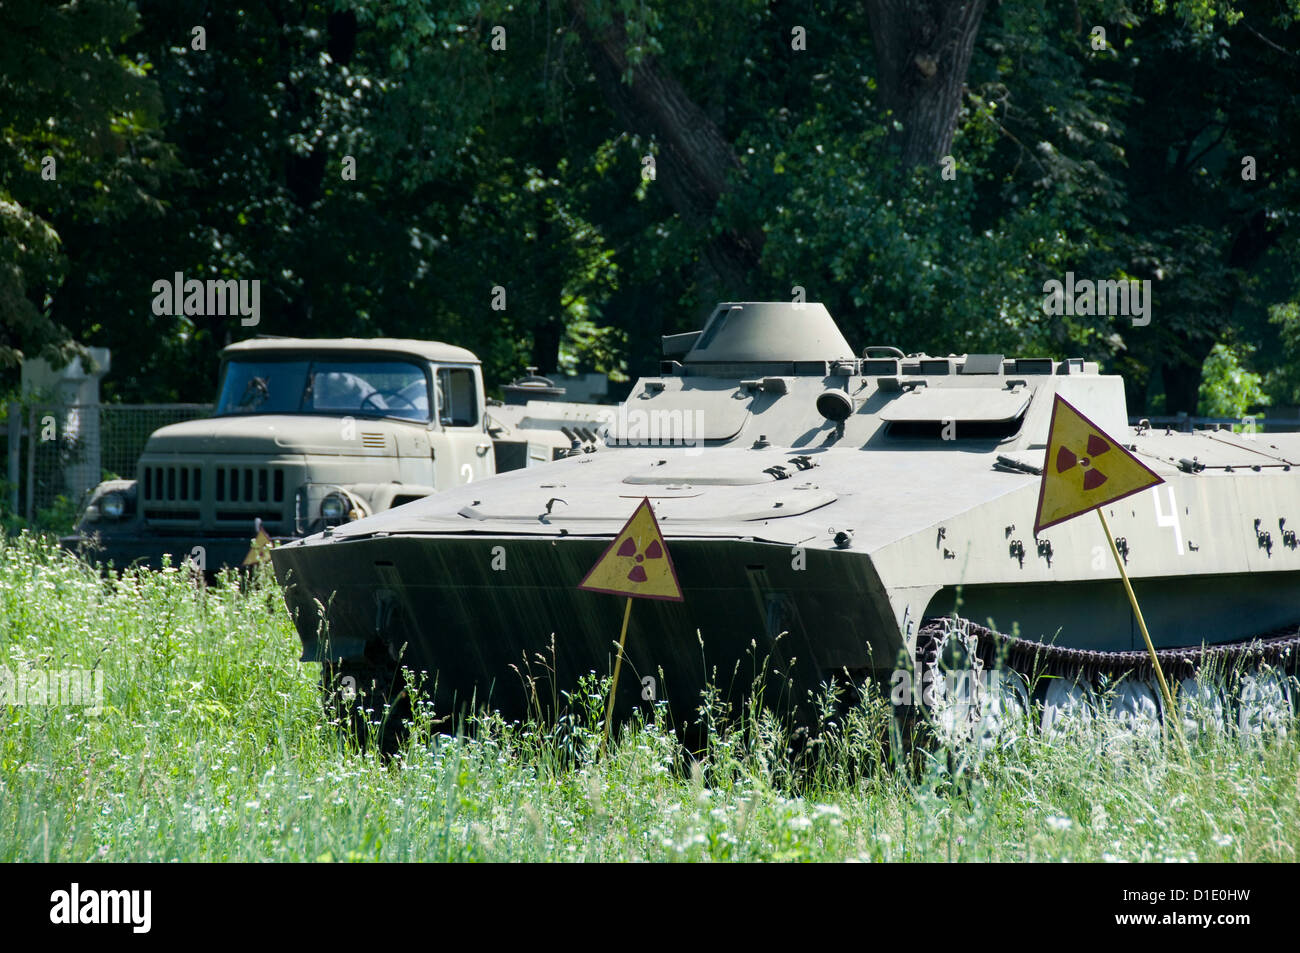 Abandoned military transport with high radiation level after Chernobyl nuclear accident liquidation - Stock Image